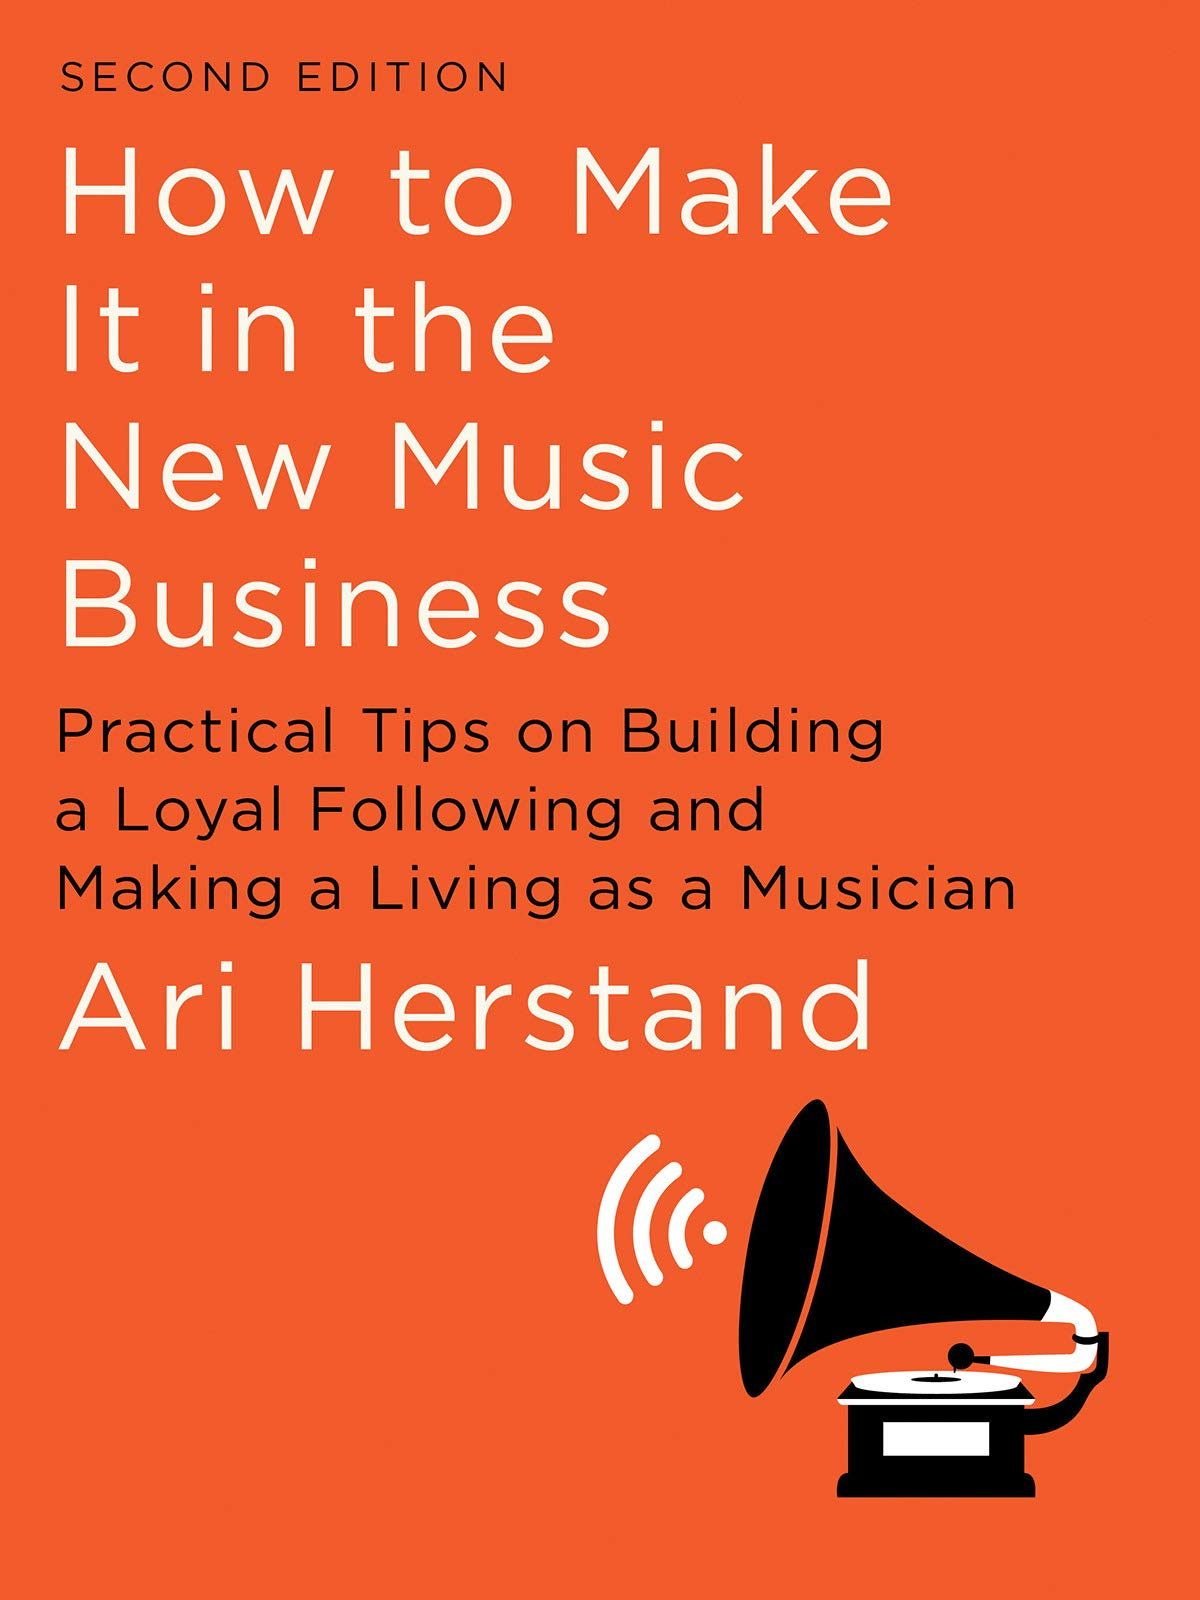 how to make it in the new music business book cover